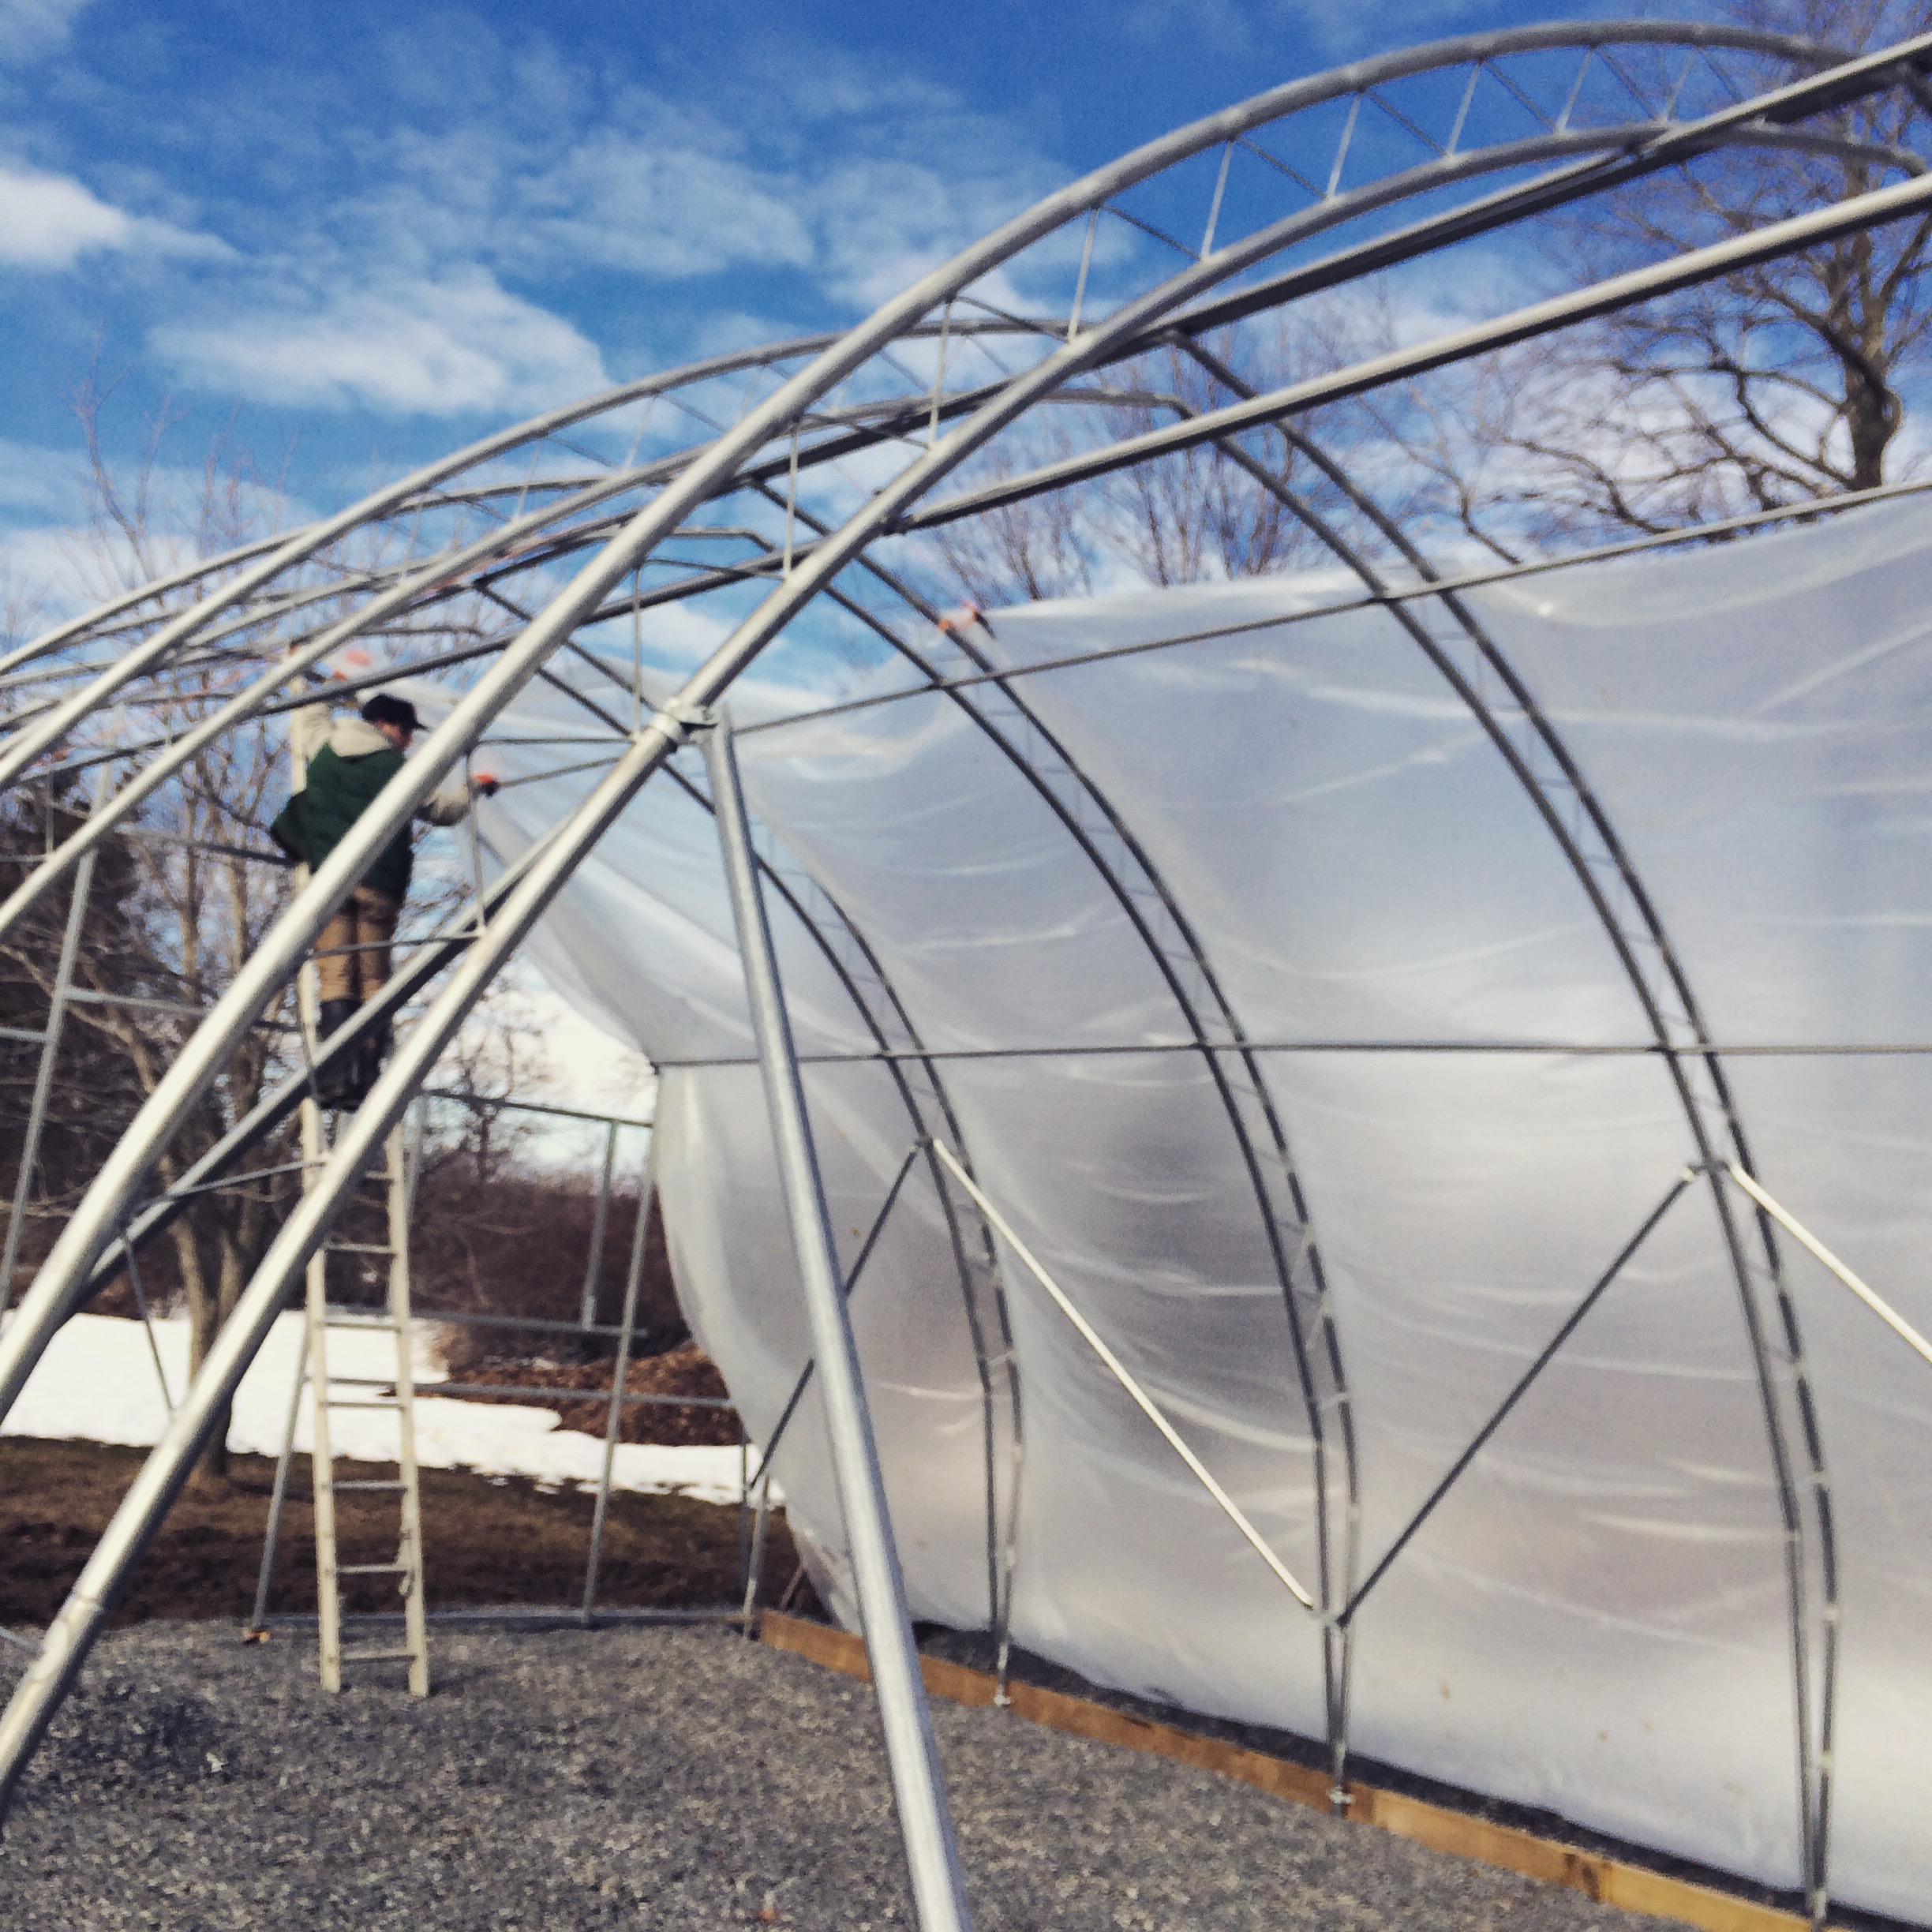 Poly goes on the greenhouse!